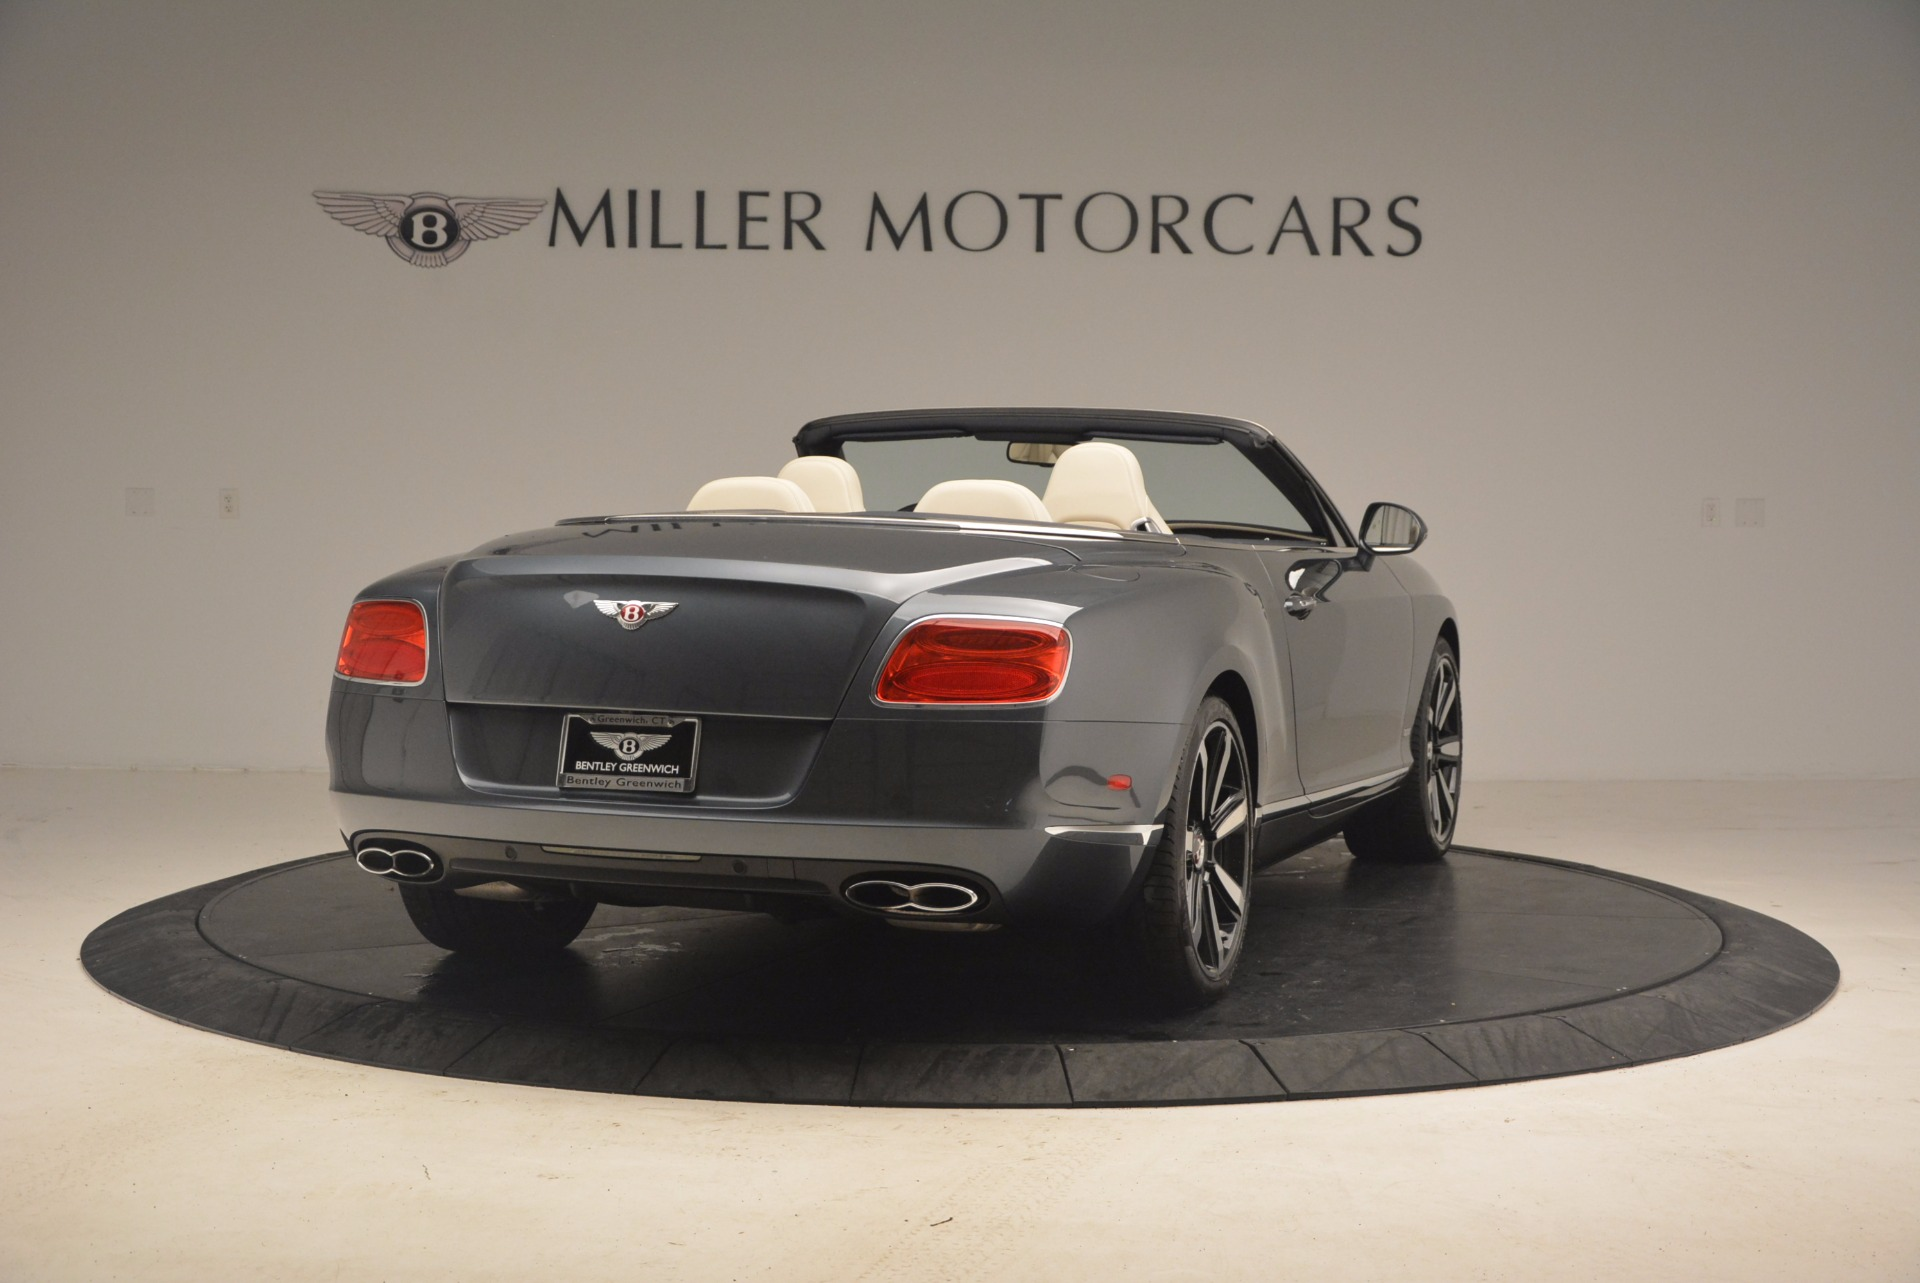 Used 2013 Bentley Continental GT V8 Le Mans Edition, 1 of 48 For Sale In Greenwich, CT 1288_p7